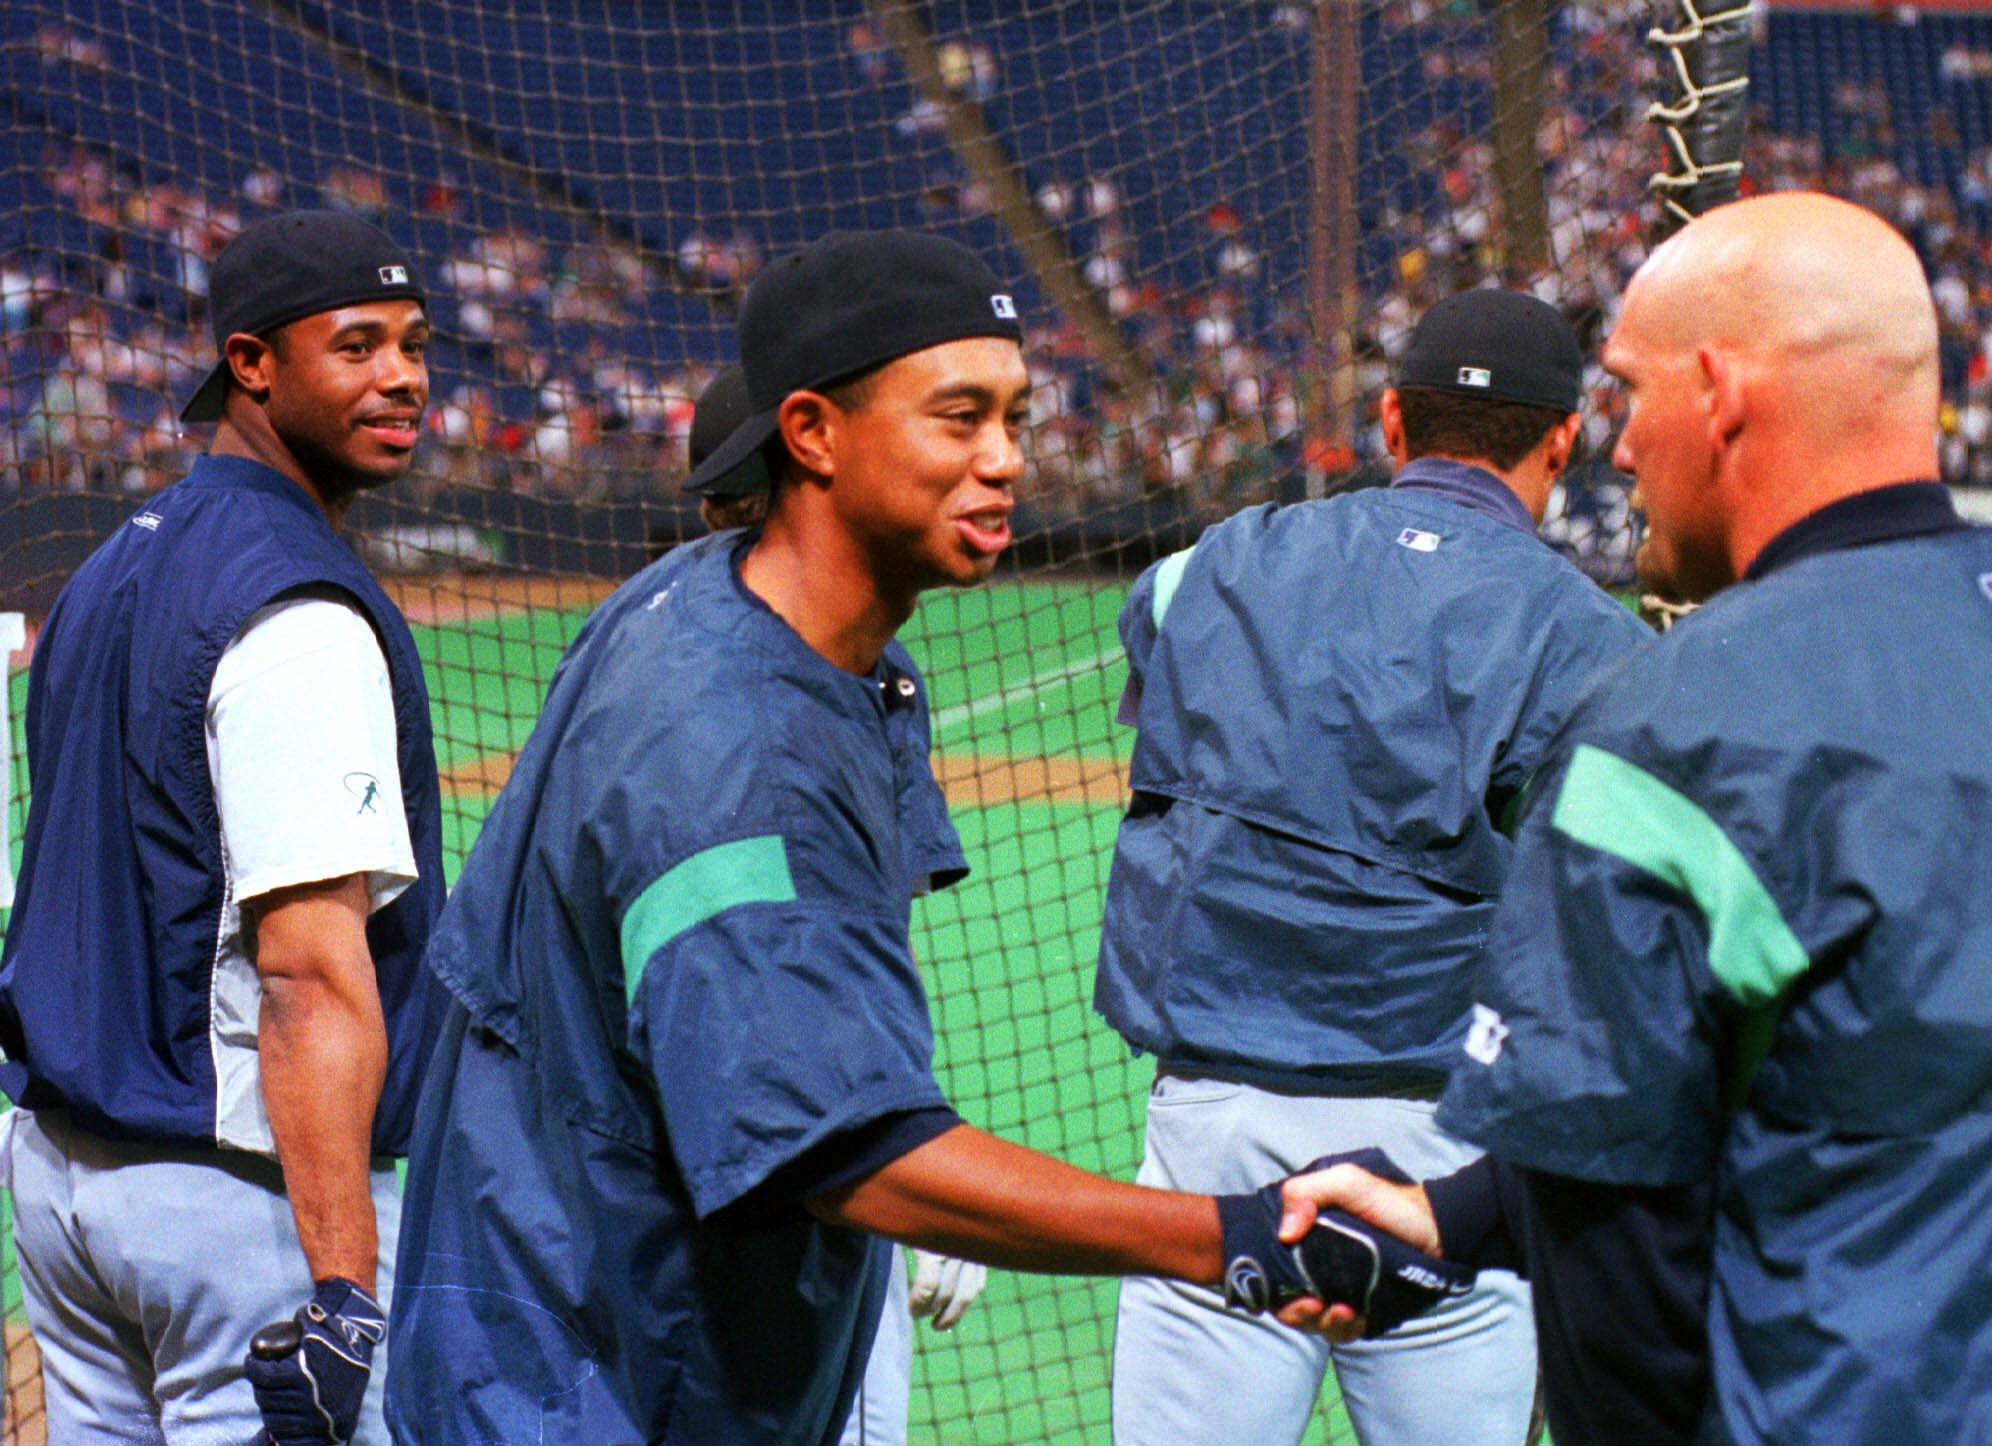 3741ae48c7 Yes, that's Tiger Woods shaking Jay Buhner's hand as a smiling Ken Griffey  Jr. looks on. Junior, 29, had a typical 31 homers, 86 RBIs and  .306/.398/.609 ...